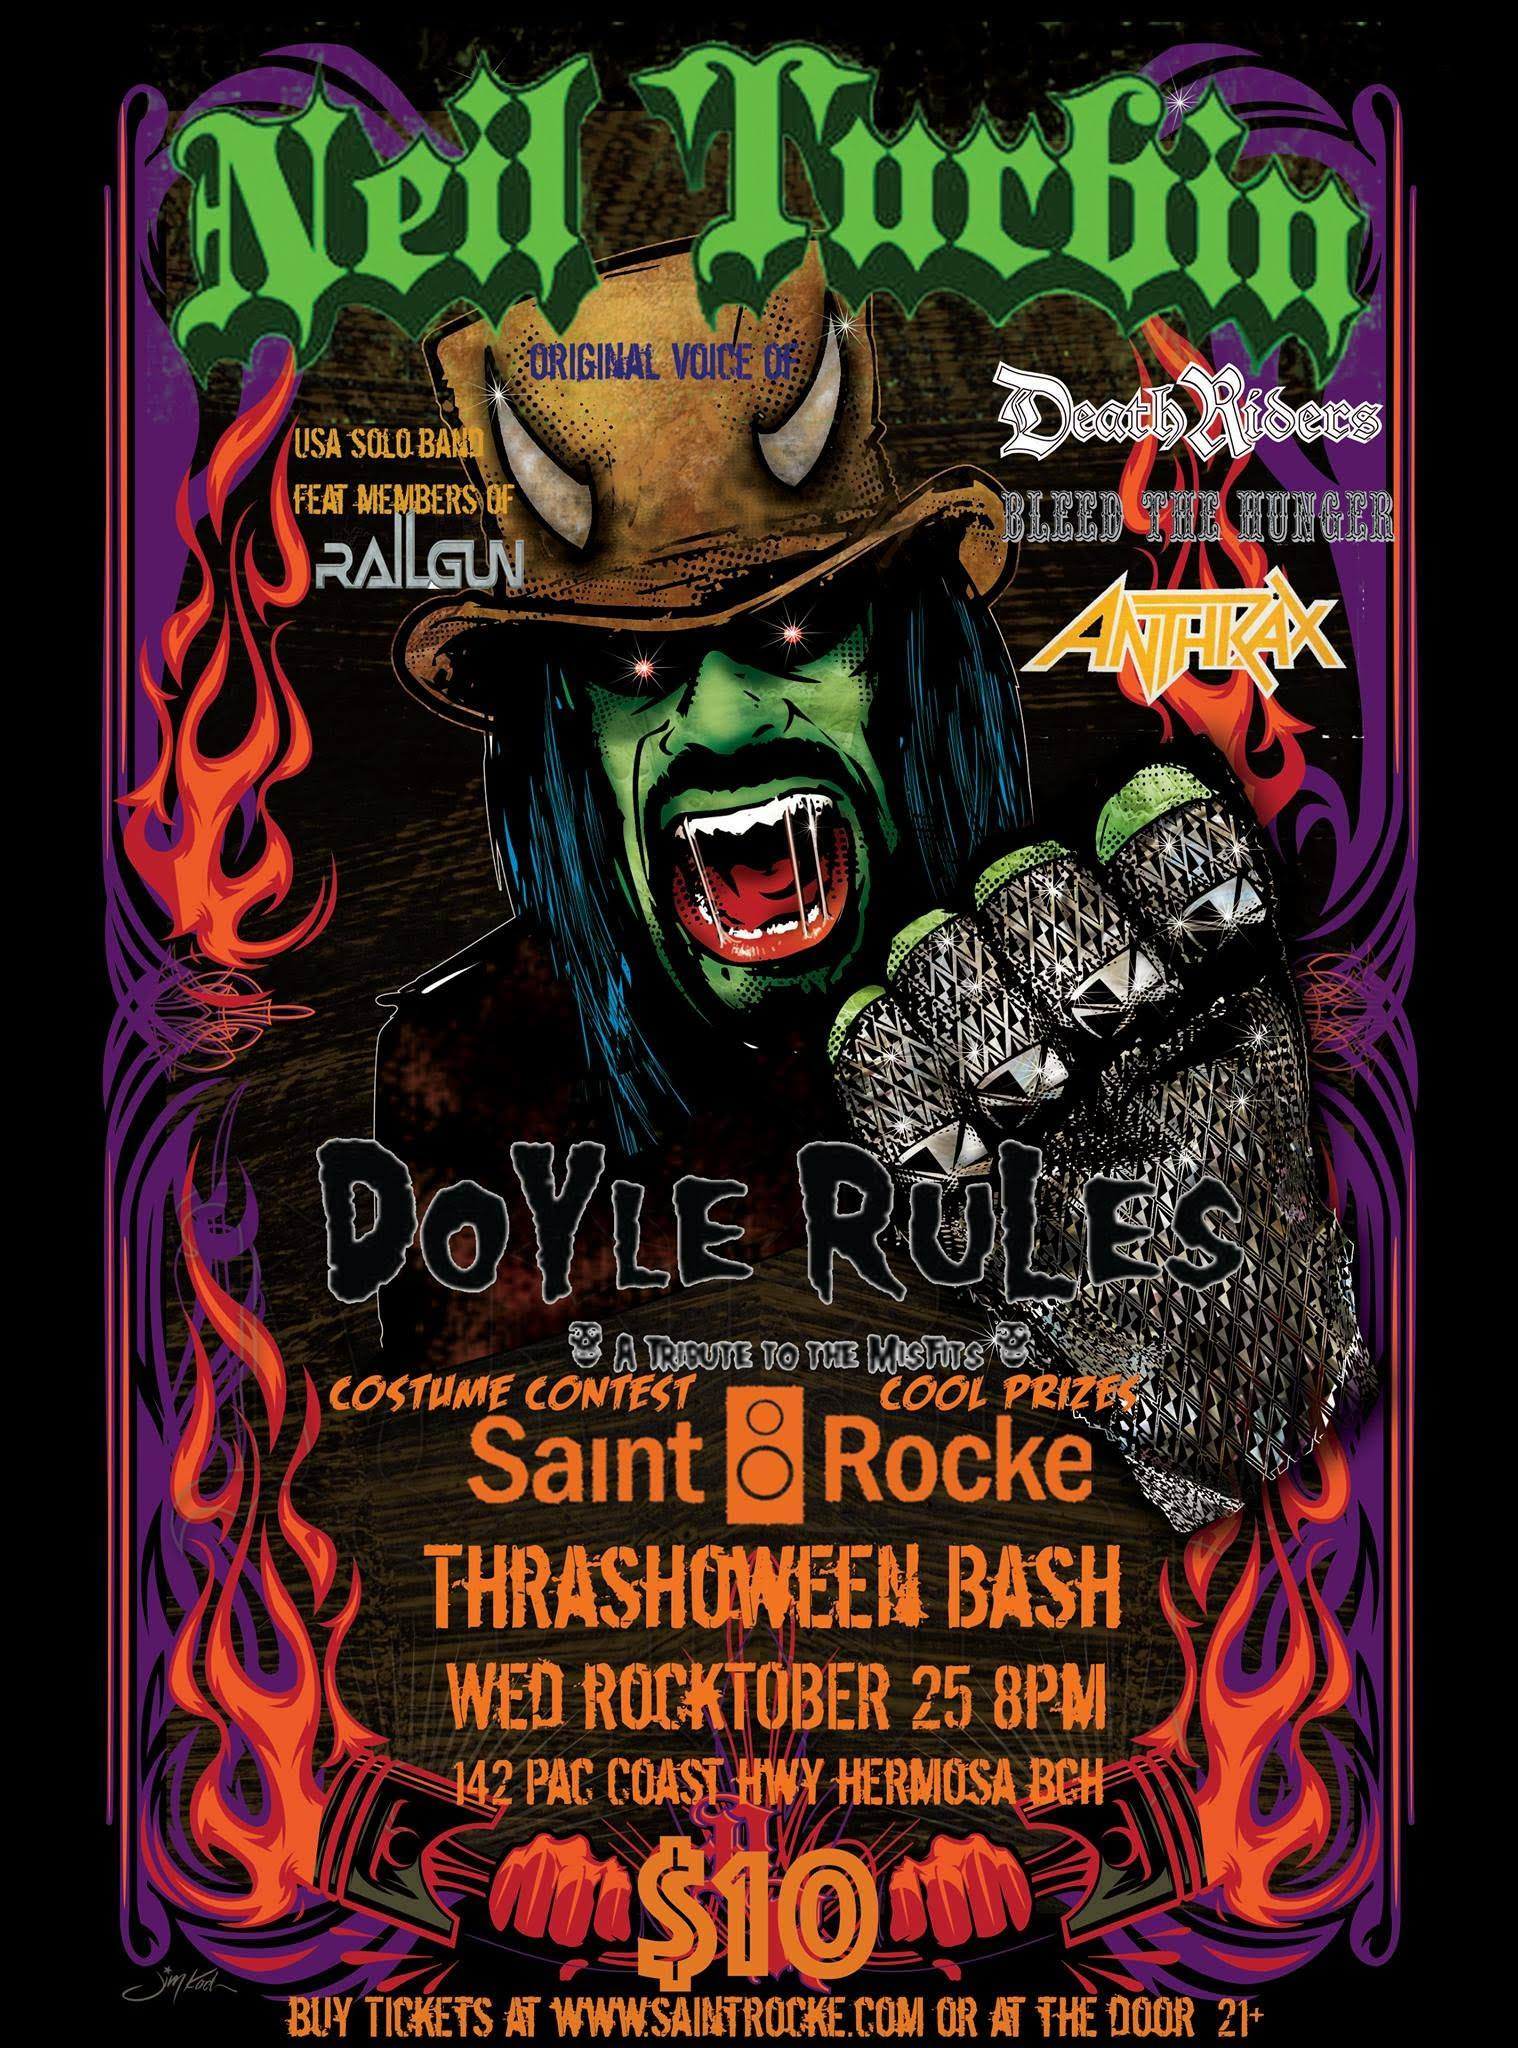 Neil Turbin USA Solo Band feat Railgun Saint Rocke Thrashoween Bash Hermosa Beach, CA 10/25/2017